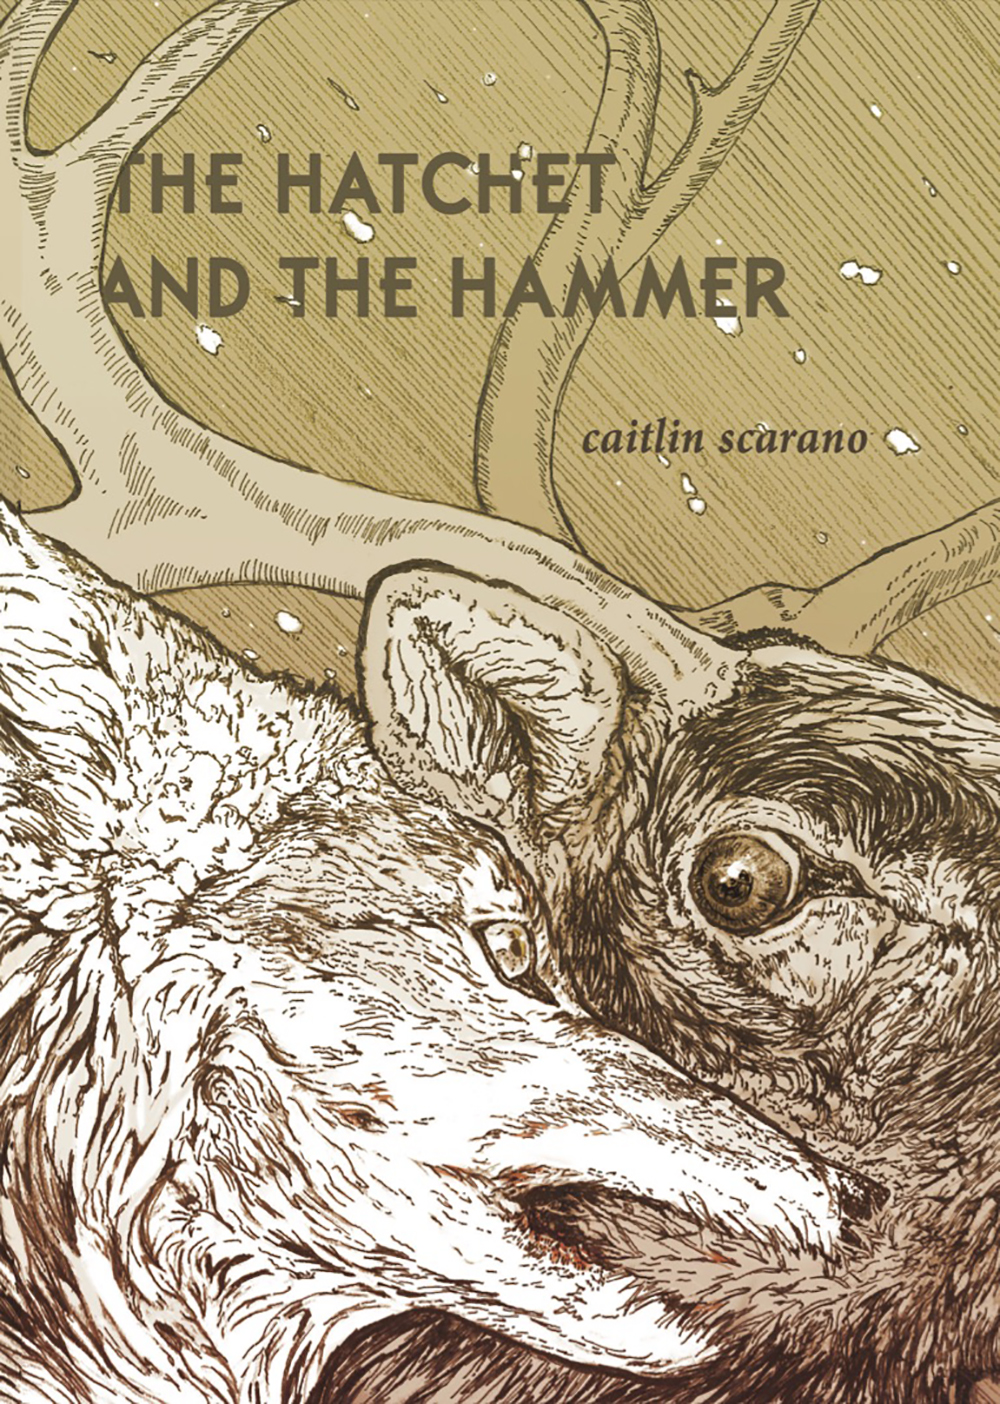 The Hatchet and the Hammer